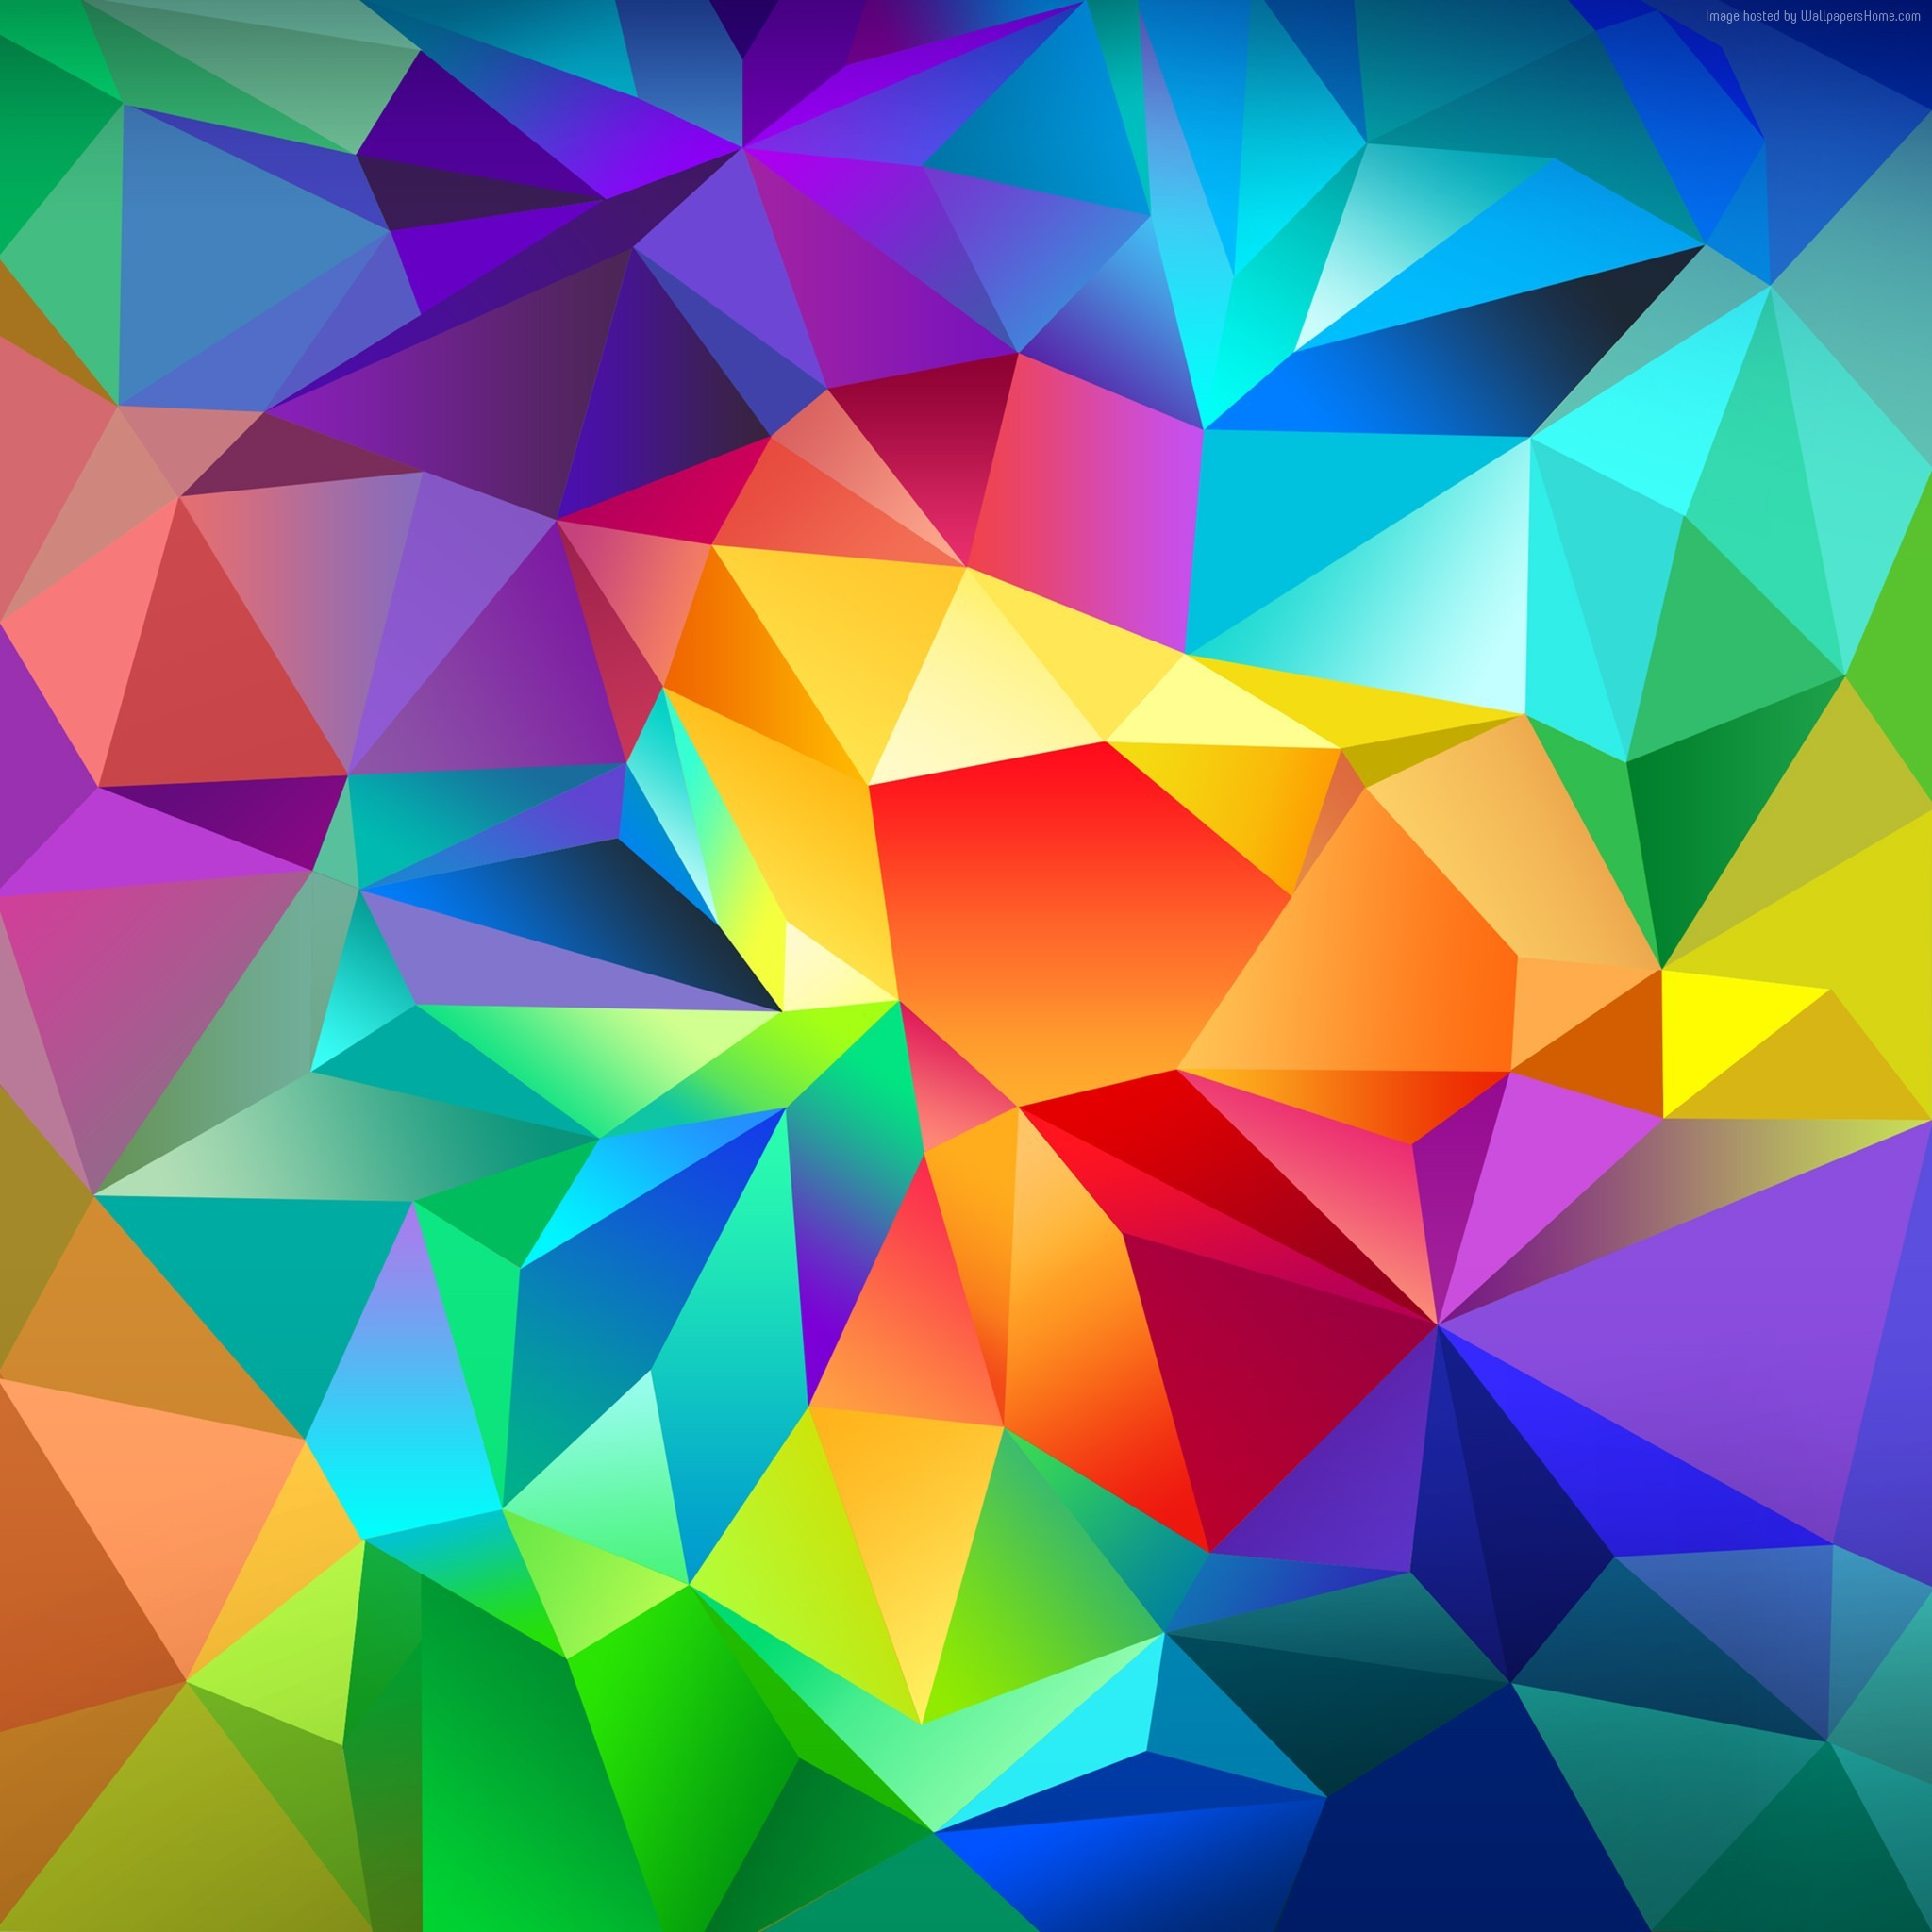 Wallpaper polygon, 4k, HD wallpaper, android wallpaper, triangle,  background, orange, red, blue, pattern, OS #3518. I've always believed that  wallpaper